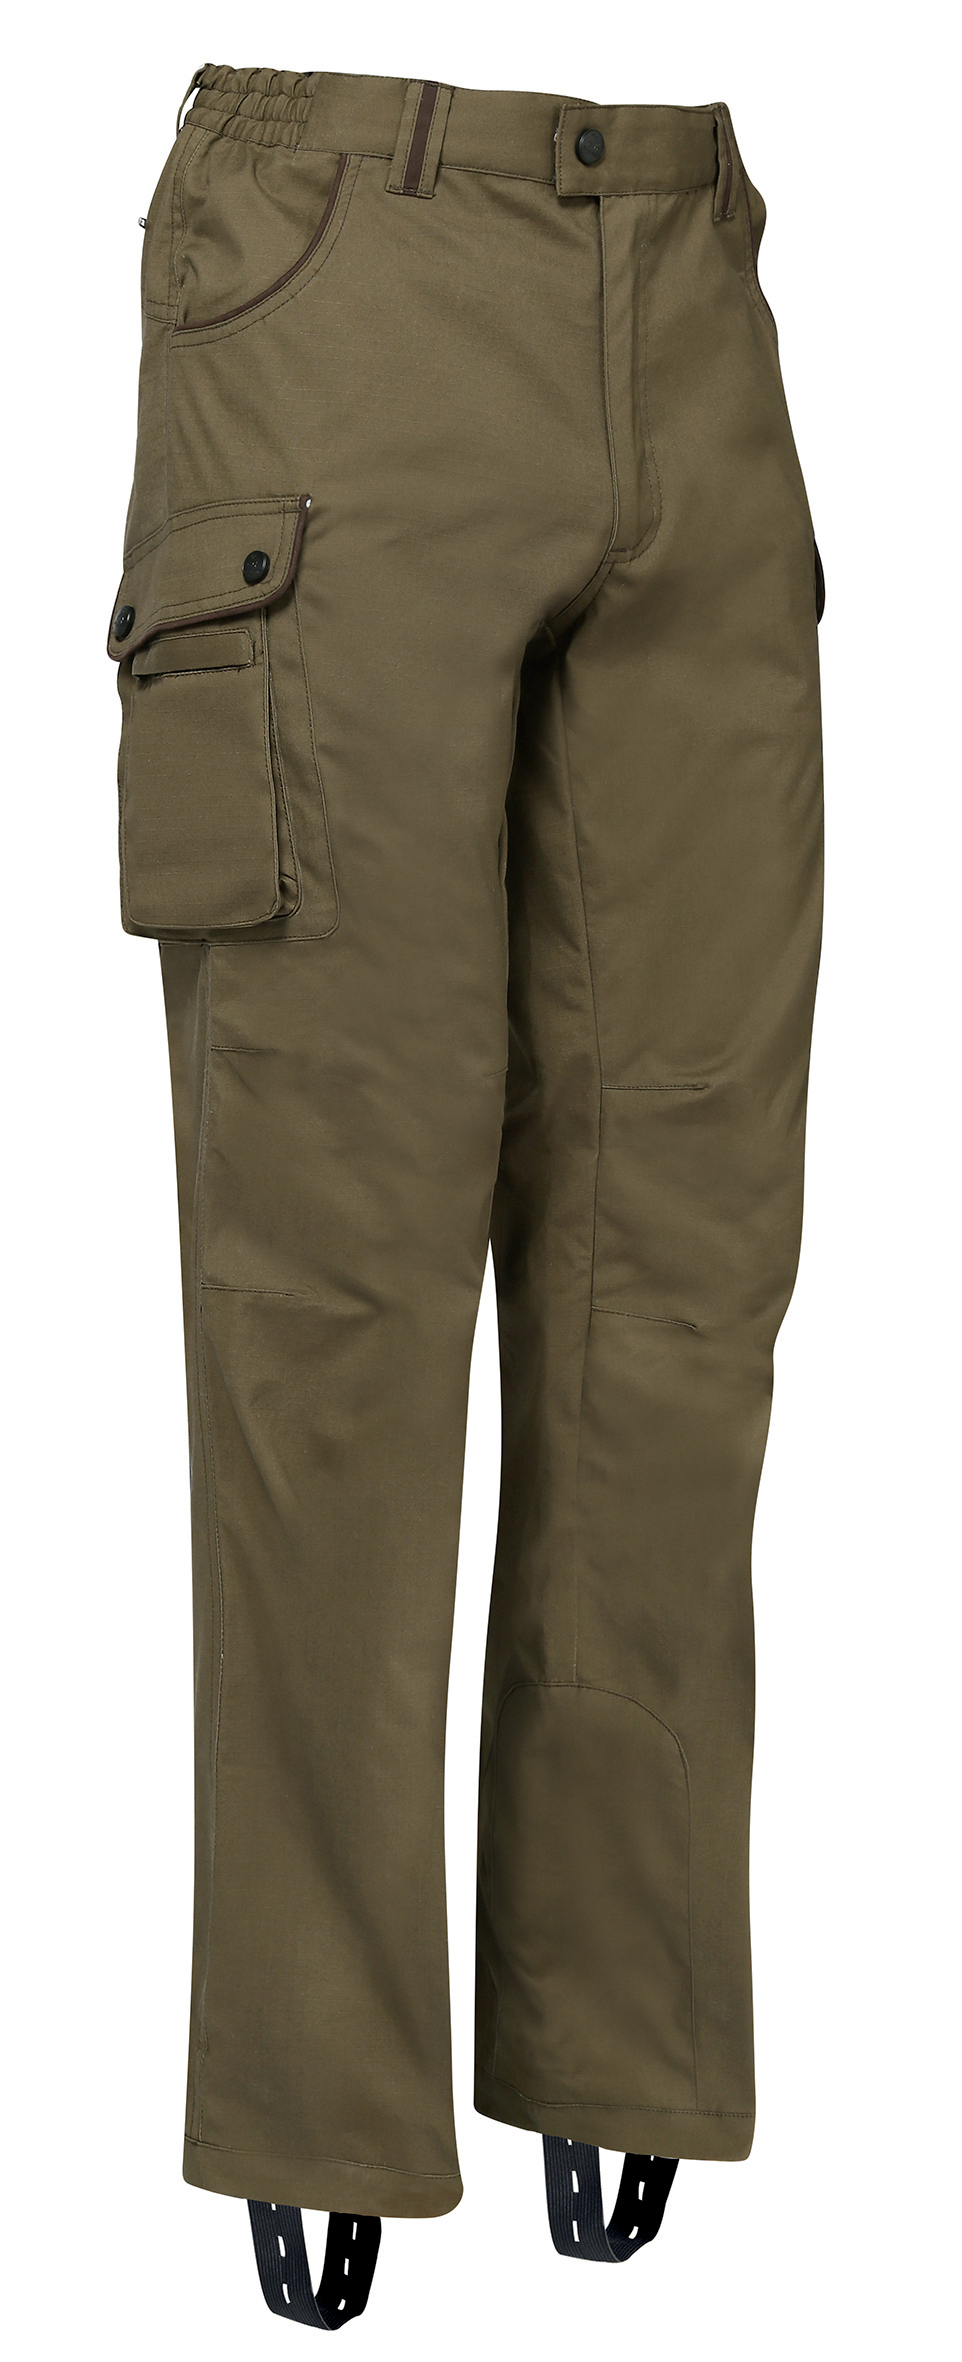 Verney-Carron Hyper Stretch Grouse Trouser Khaki